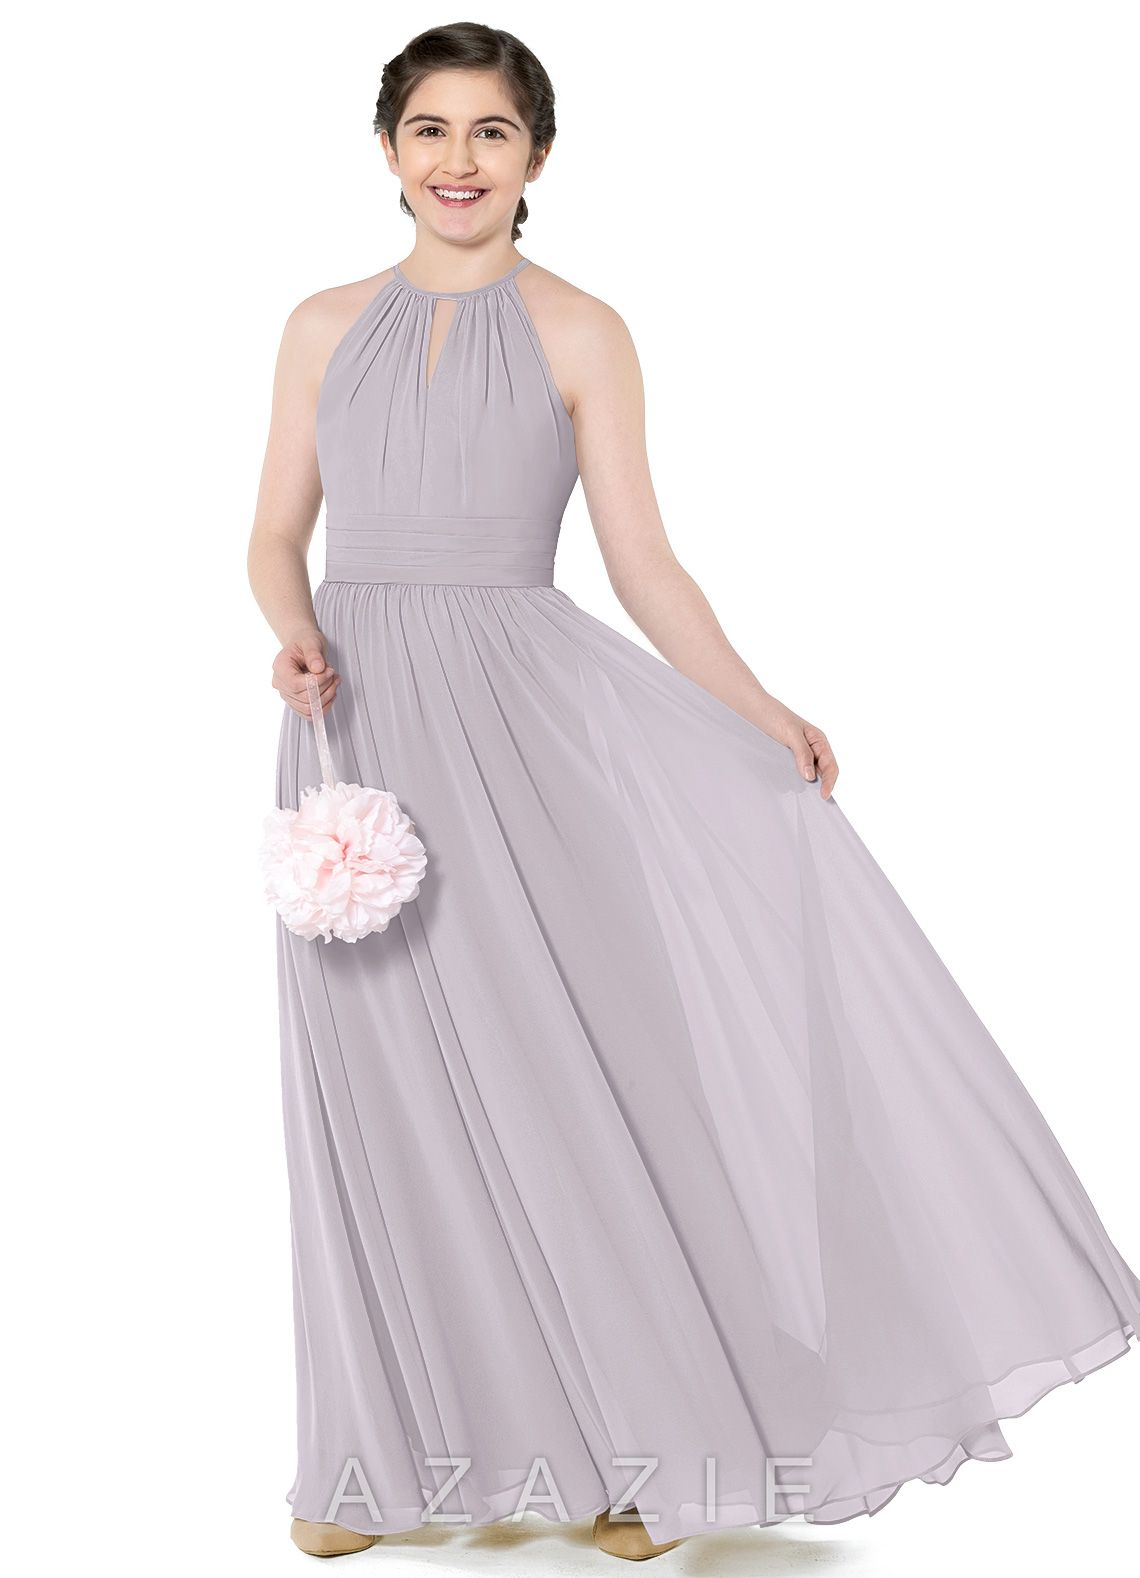 Junior Bridesmaid Dresses Azazie - Ficts